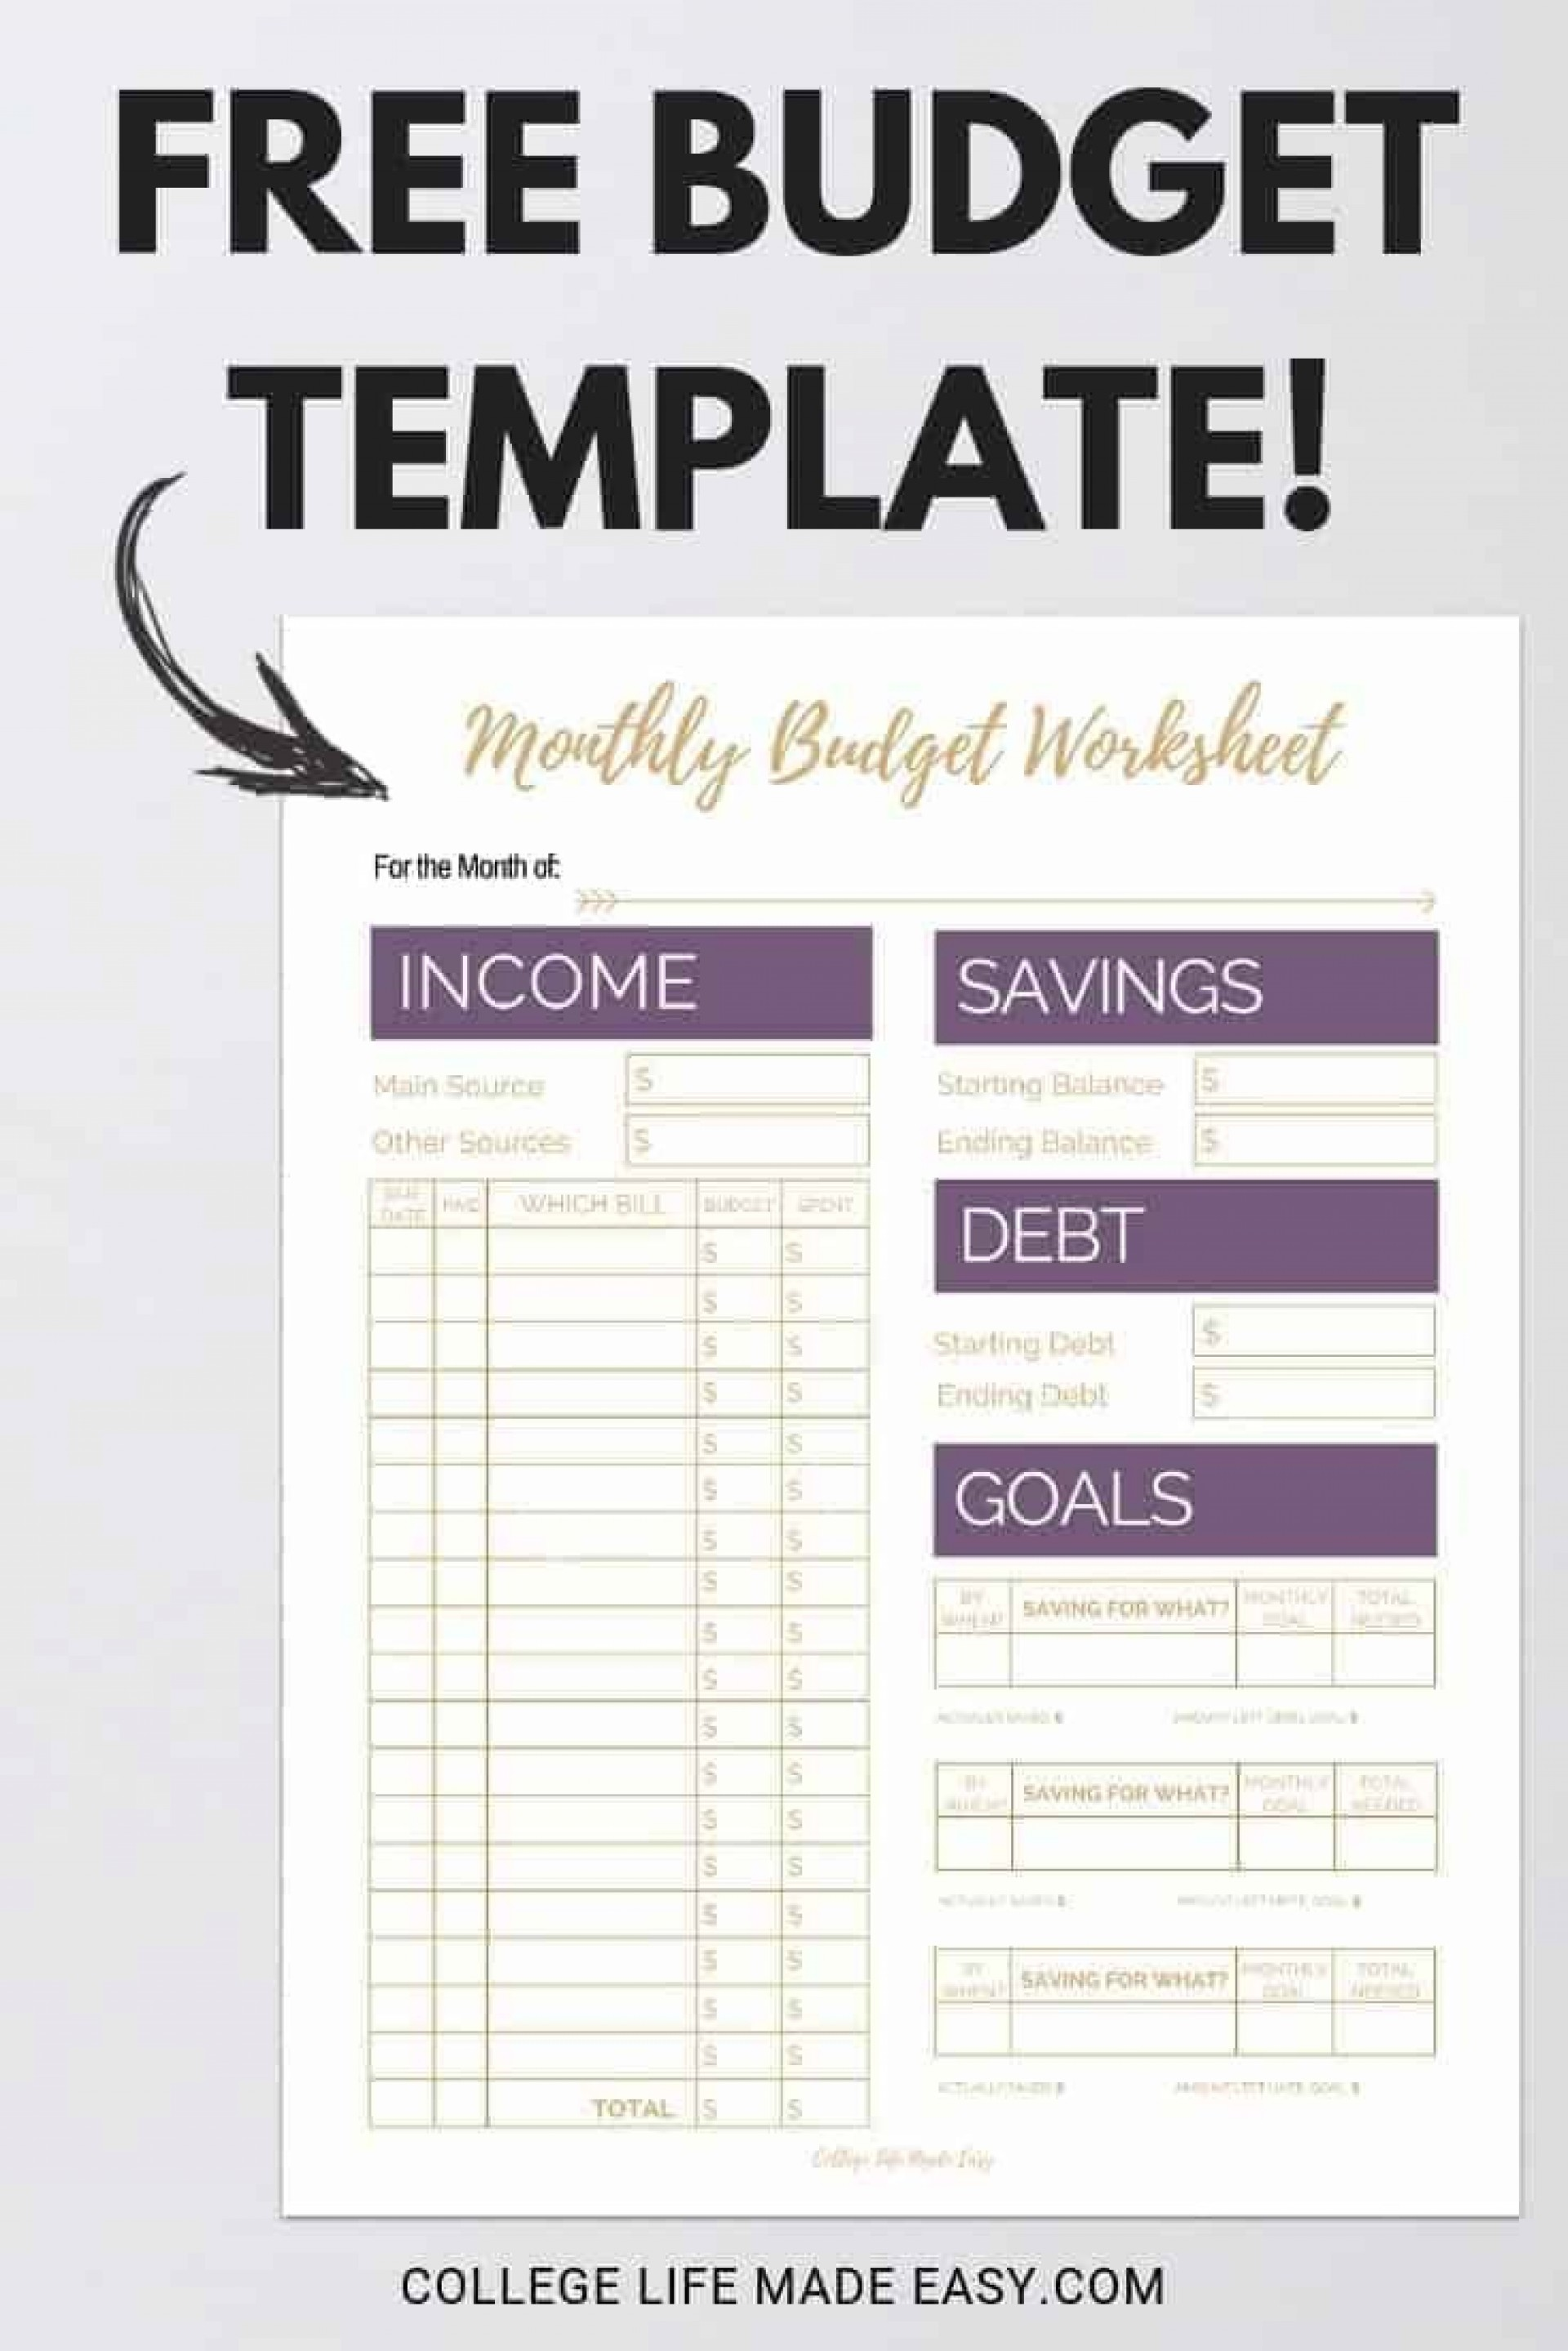 004 Archaicawful Free Printable Home Budget Template Photo  Form1920